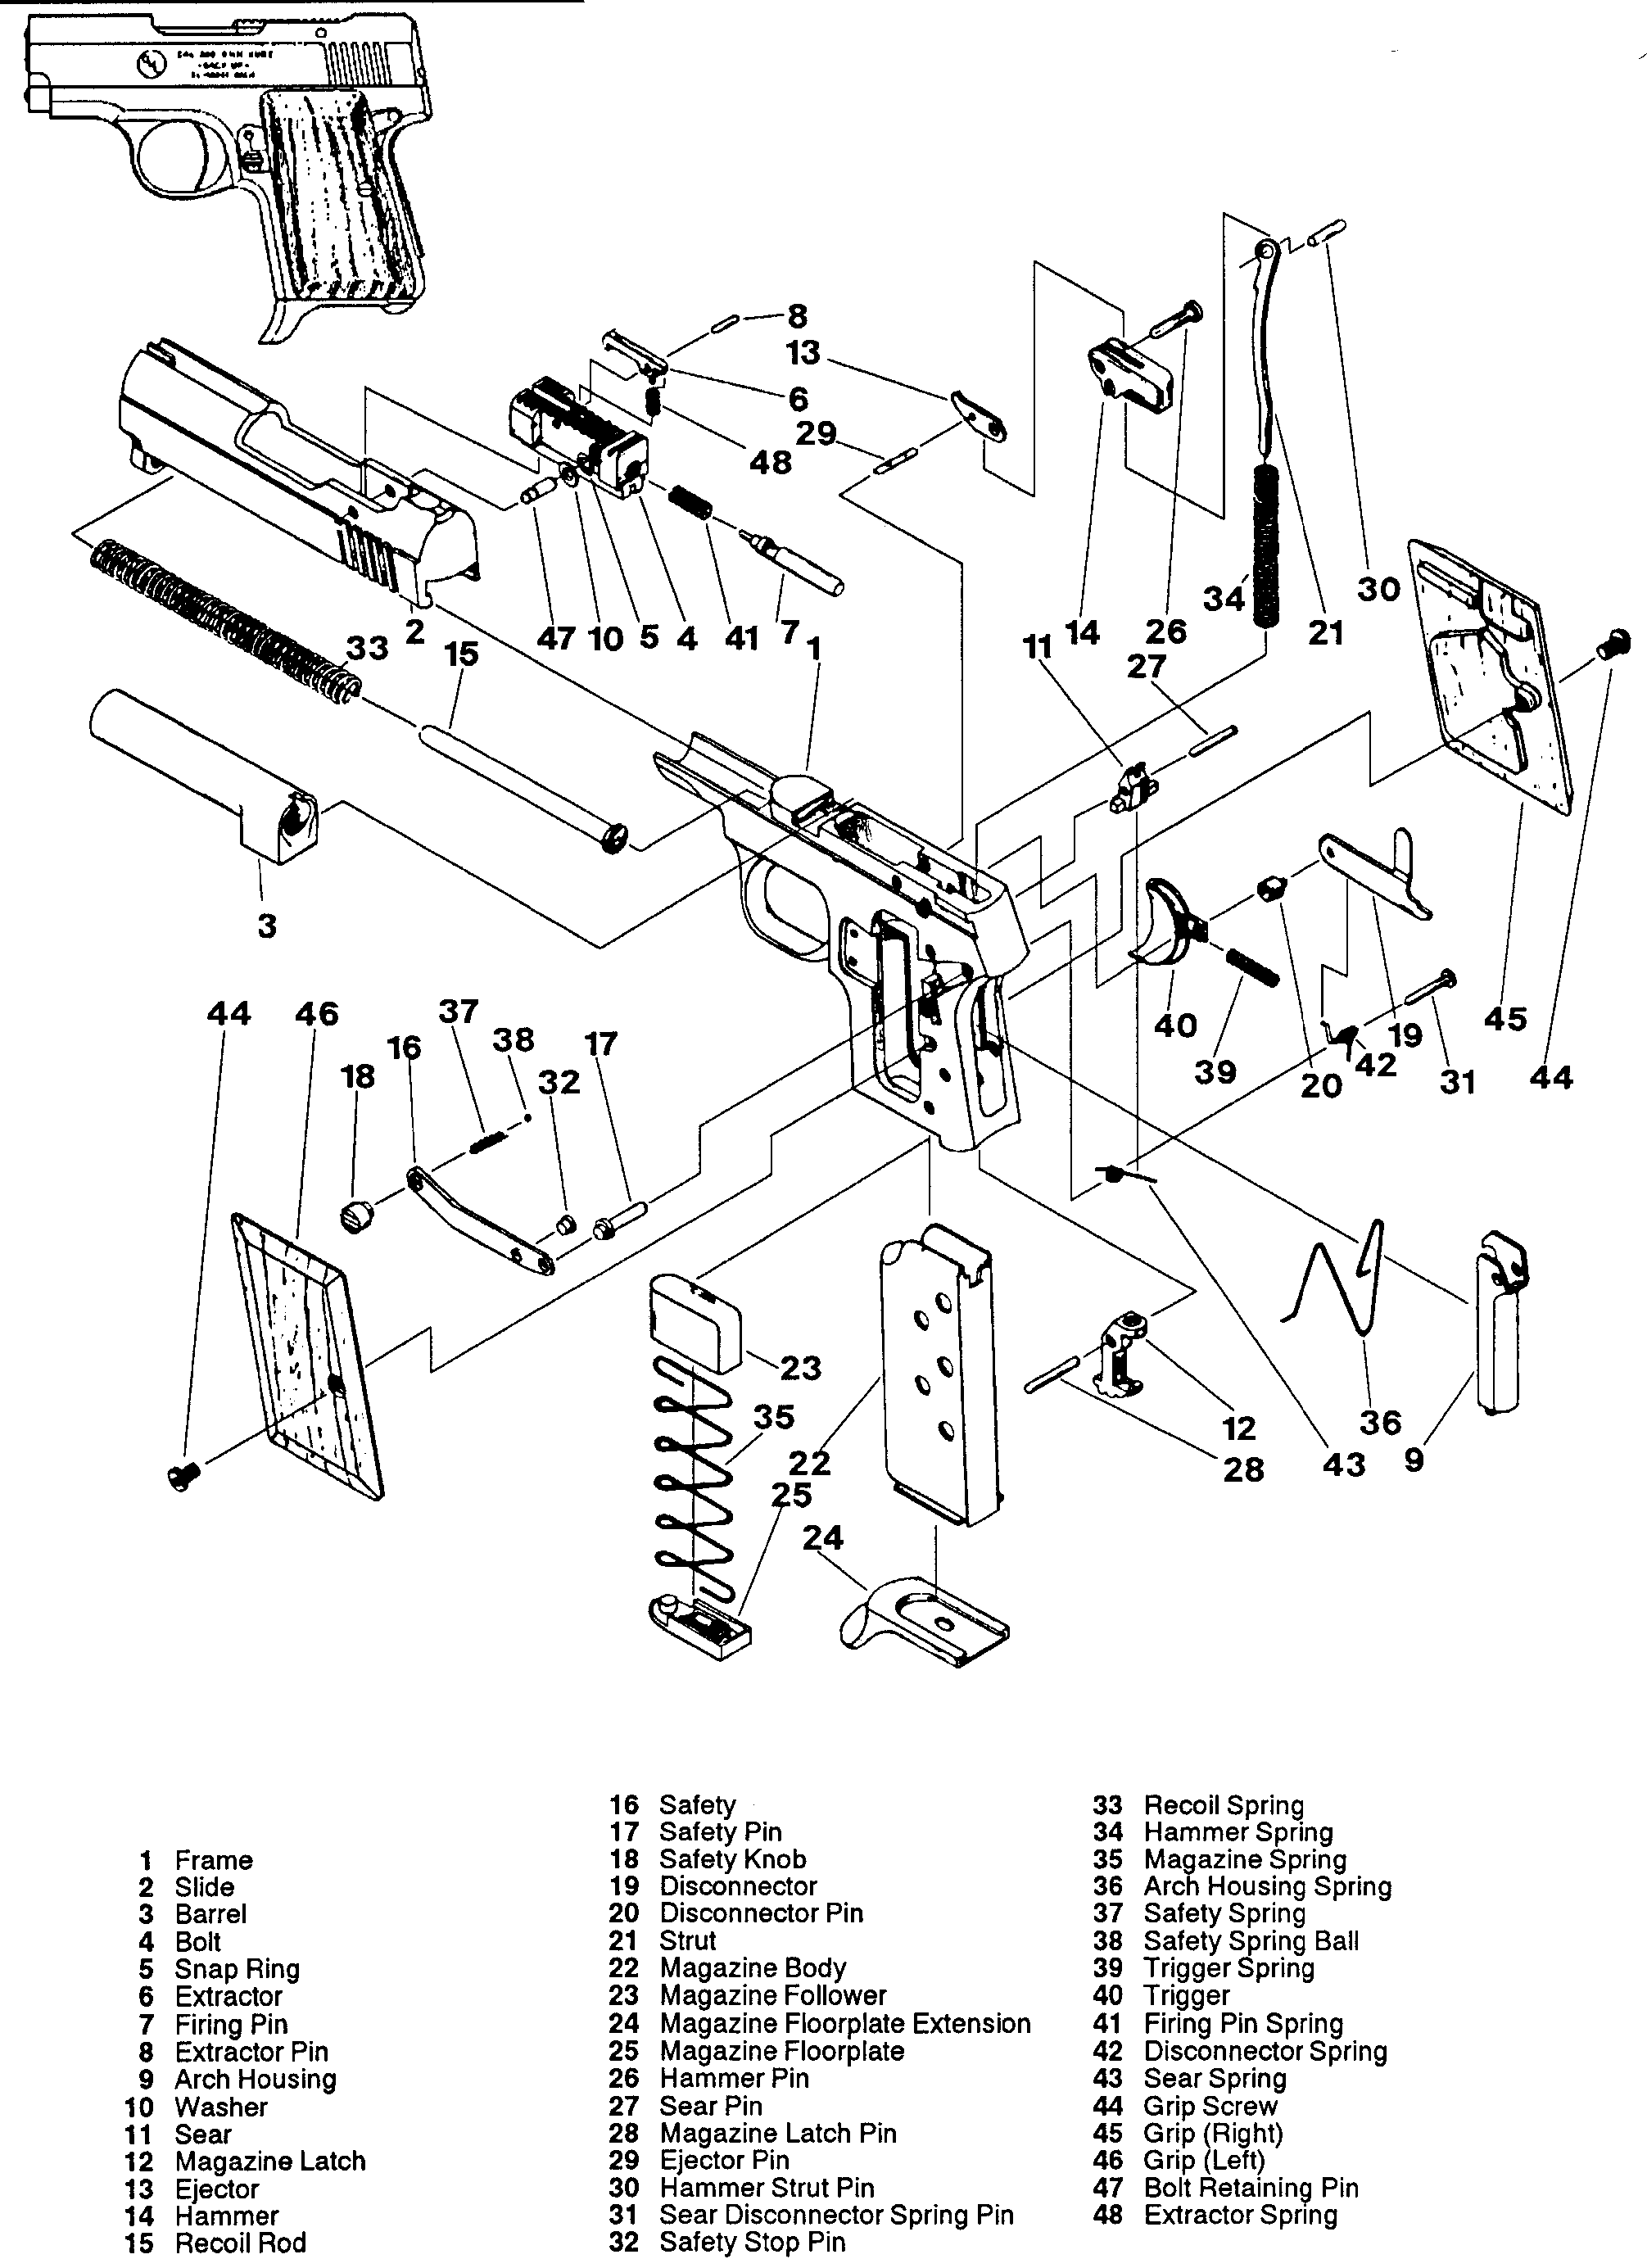 Llama 380 Parts Diagram Library Of Wiring 1911 Safety Also With Exploded Misure Rh Tiropratico Com 45 Numrich Gun Diagrams